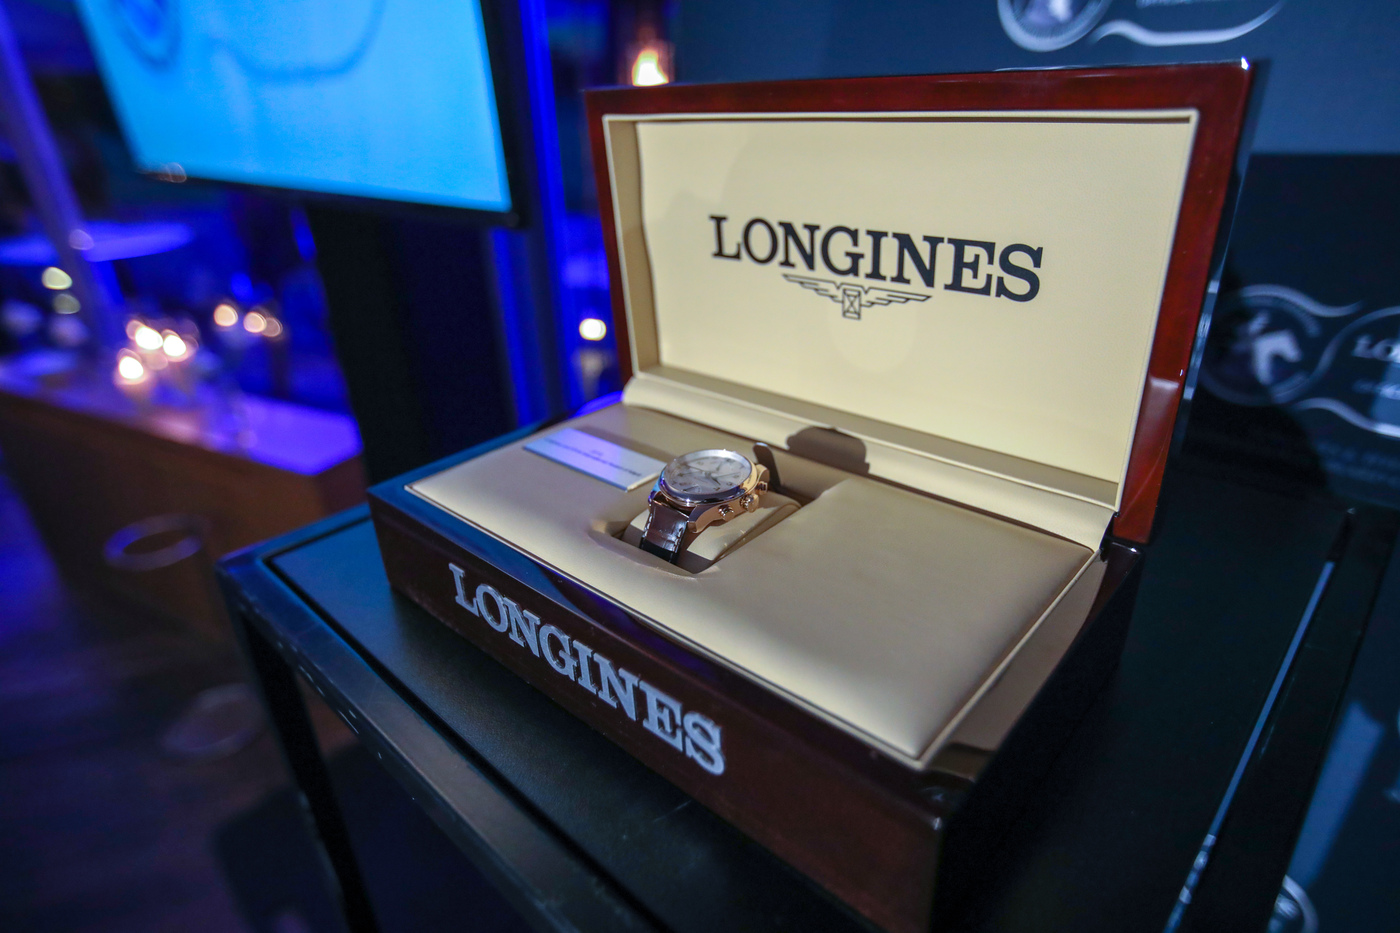 Longines Flat Racing Event: John Messara Receives the 2019 Longines and IFHA International Award of Merit 2